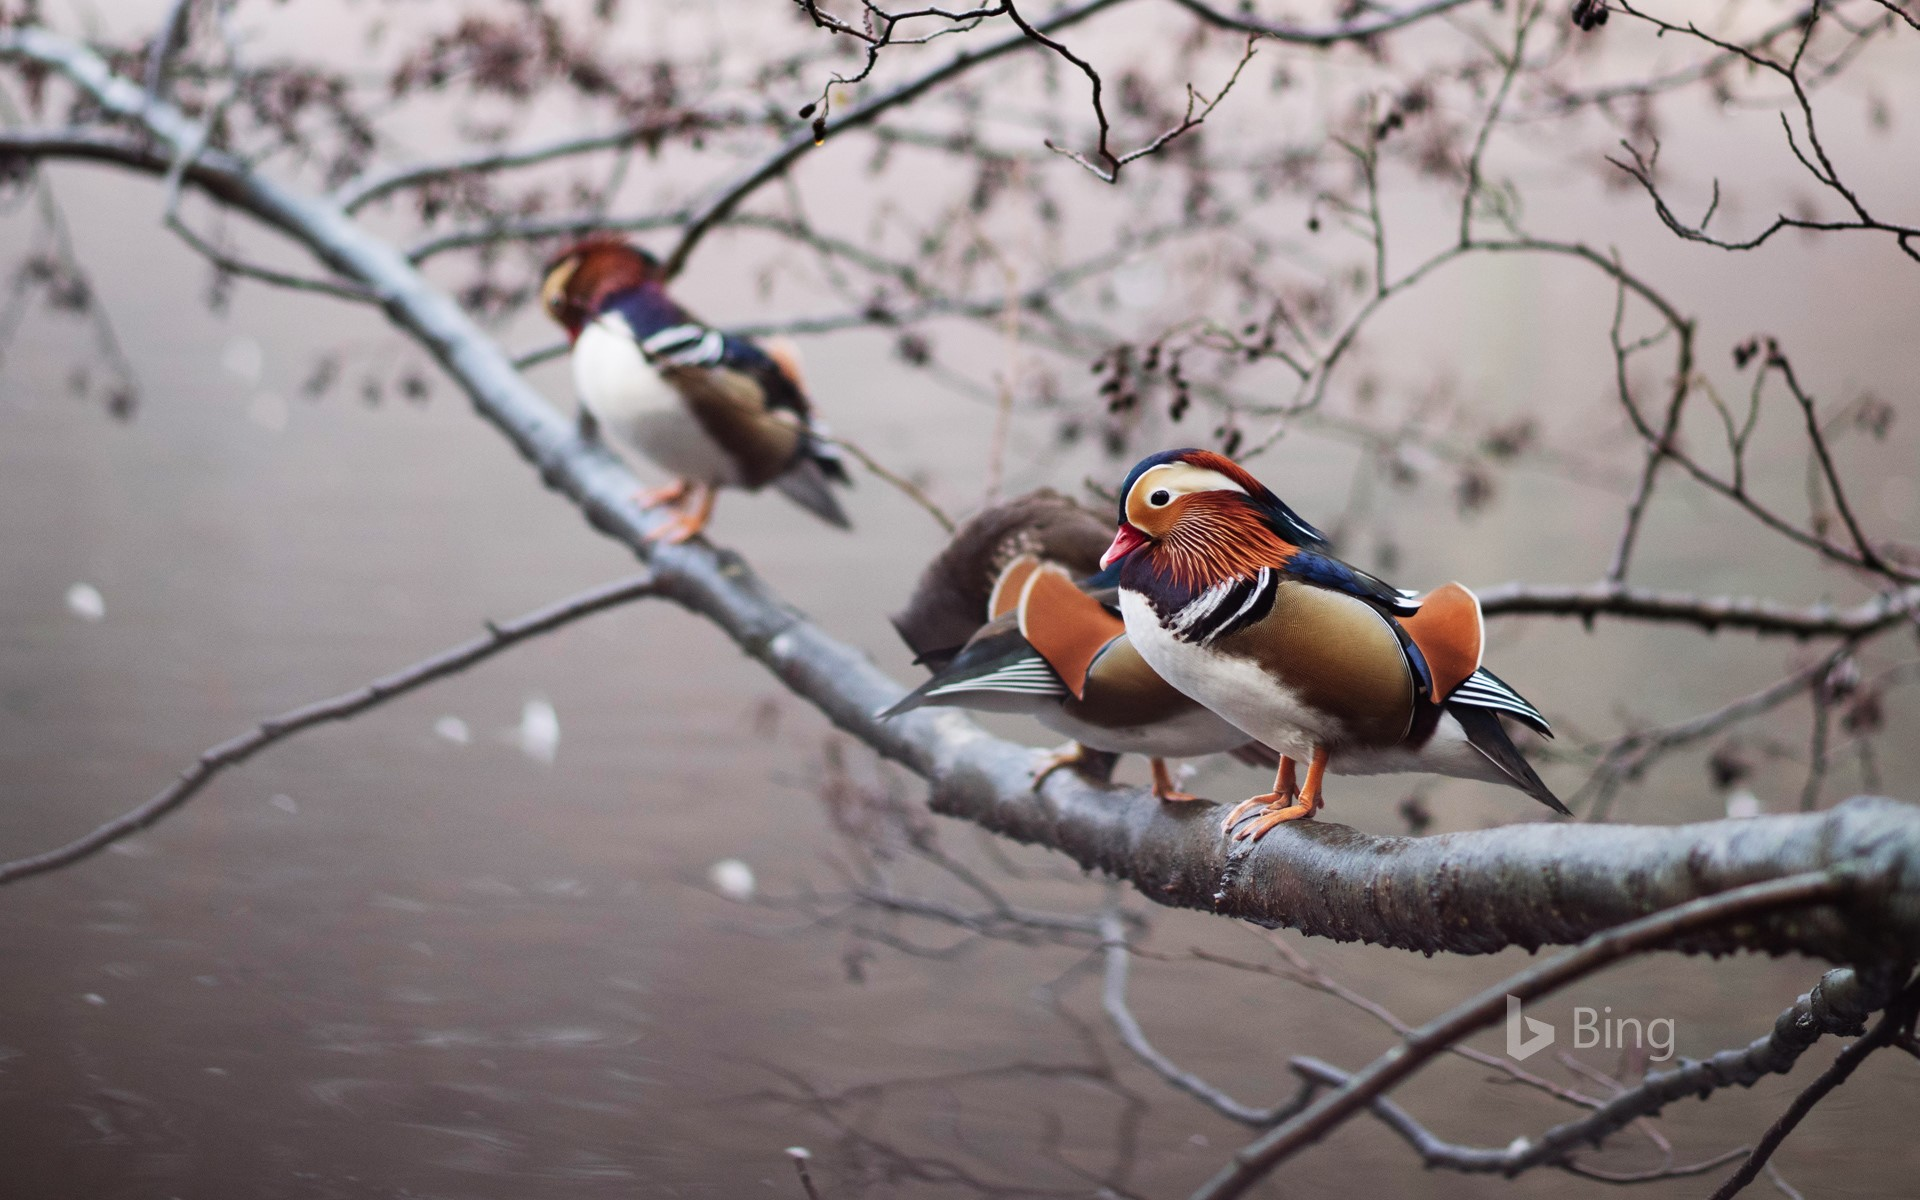 Mandarin ducks perched on a branch